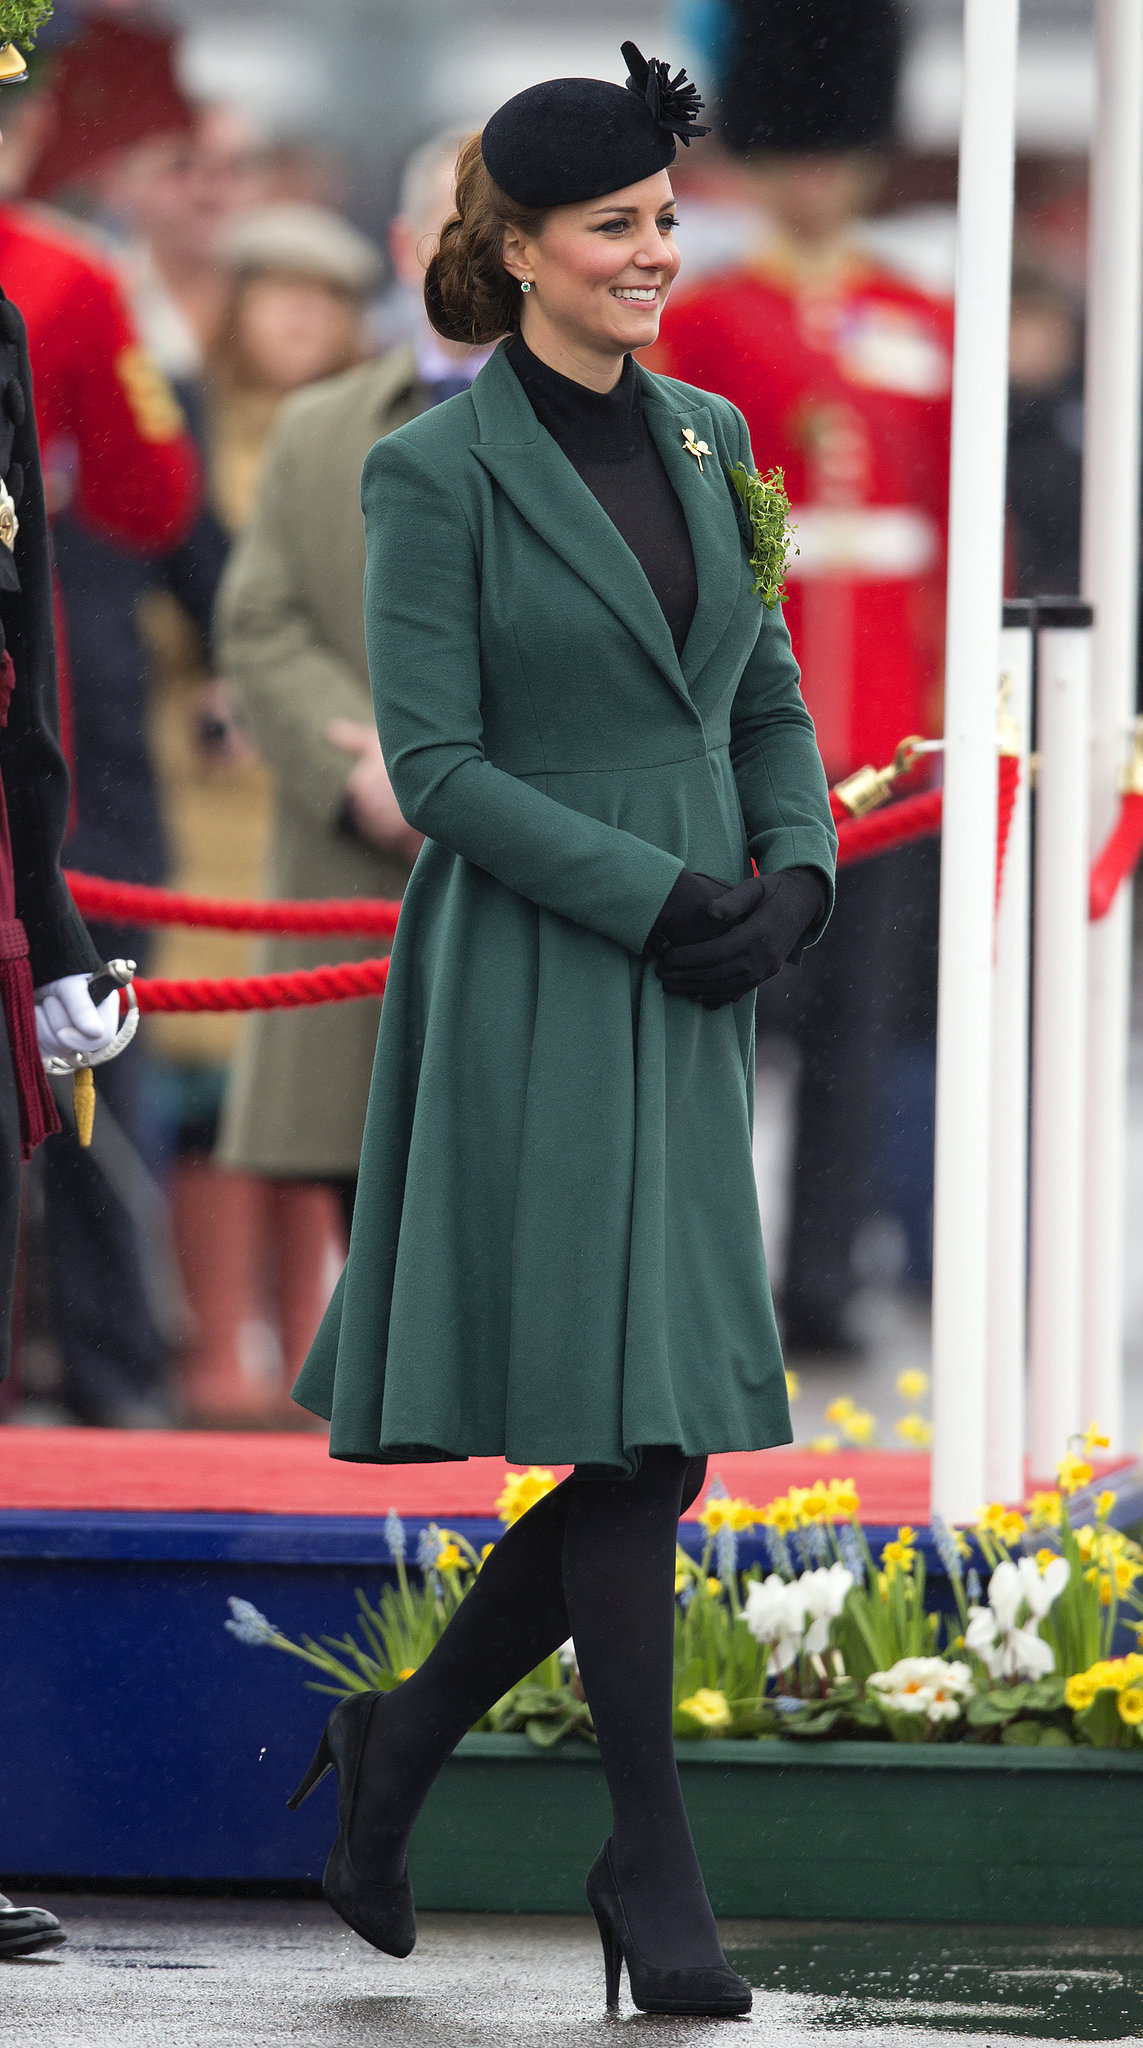 The duchess celebrated St. Patrick's Day 2013 by visiting the barracks at Aldershot, England, to pin clovers on soldiers.